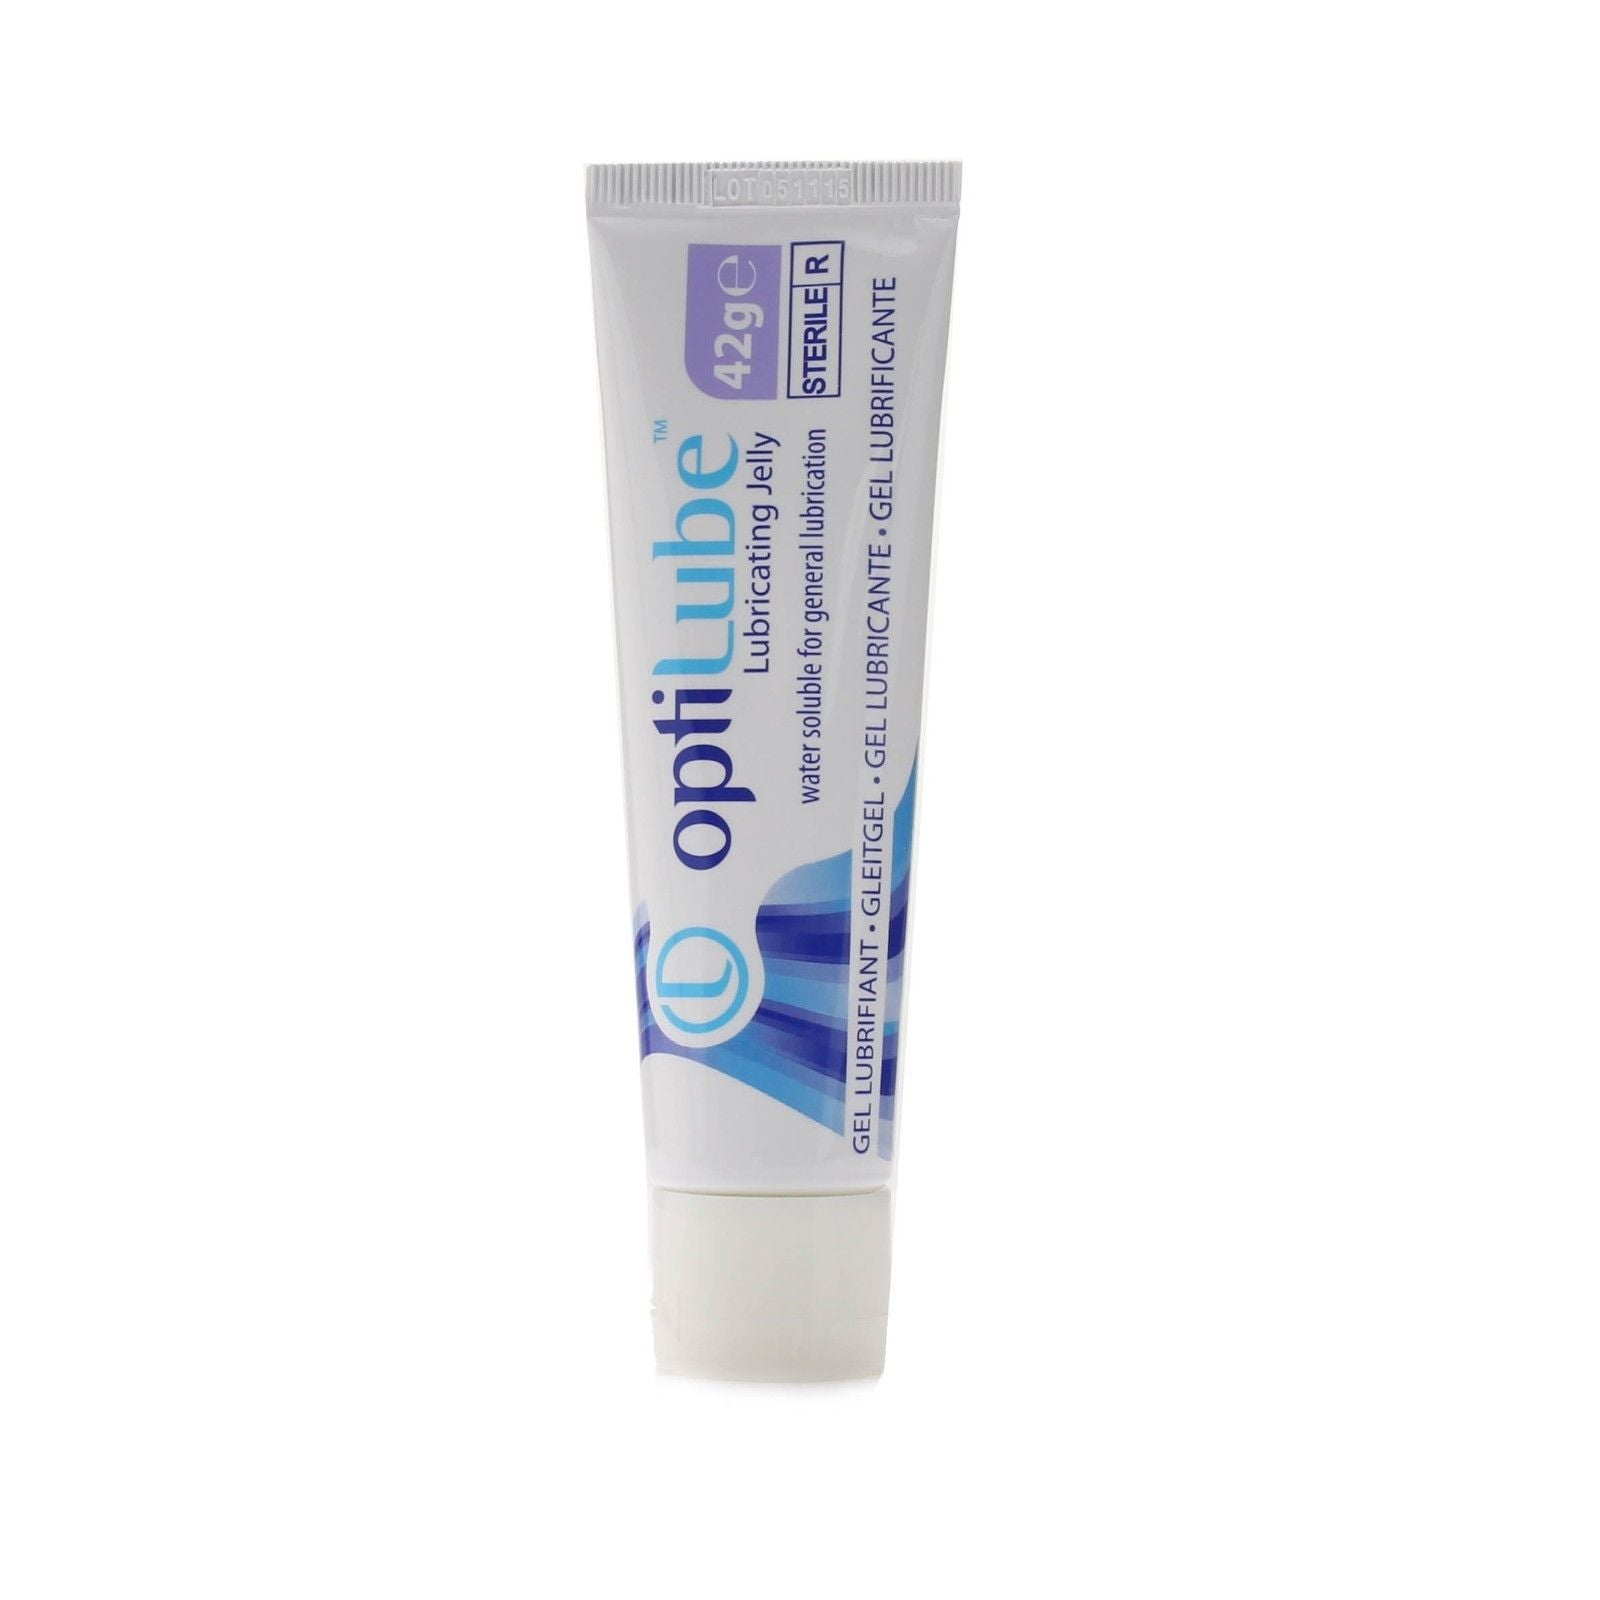 Optilube Sterile Lubricating Jelly - 42g Tube-SINGLE NEEDLE-SINGLE NEEDLE Stick & Poke Tattoo